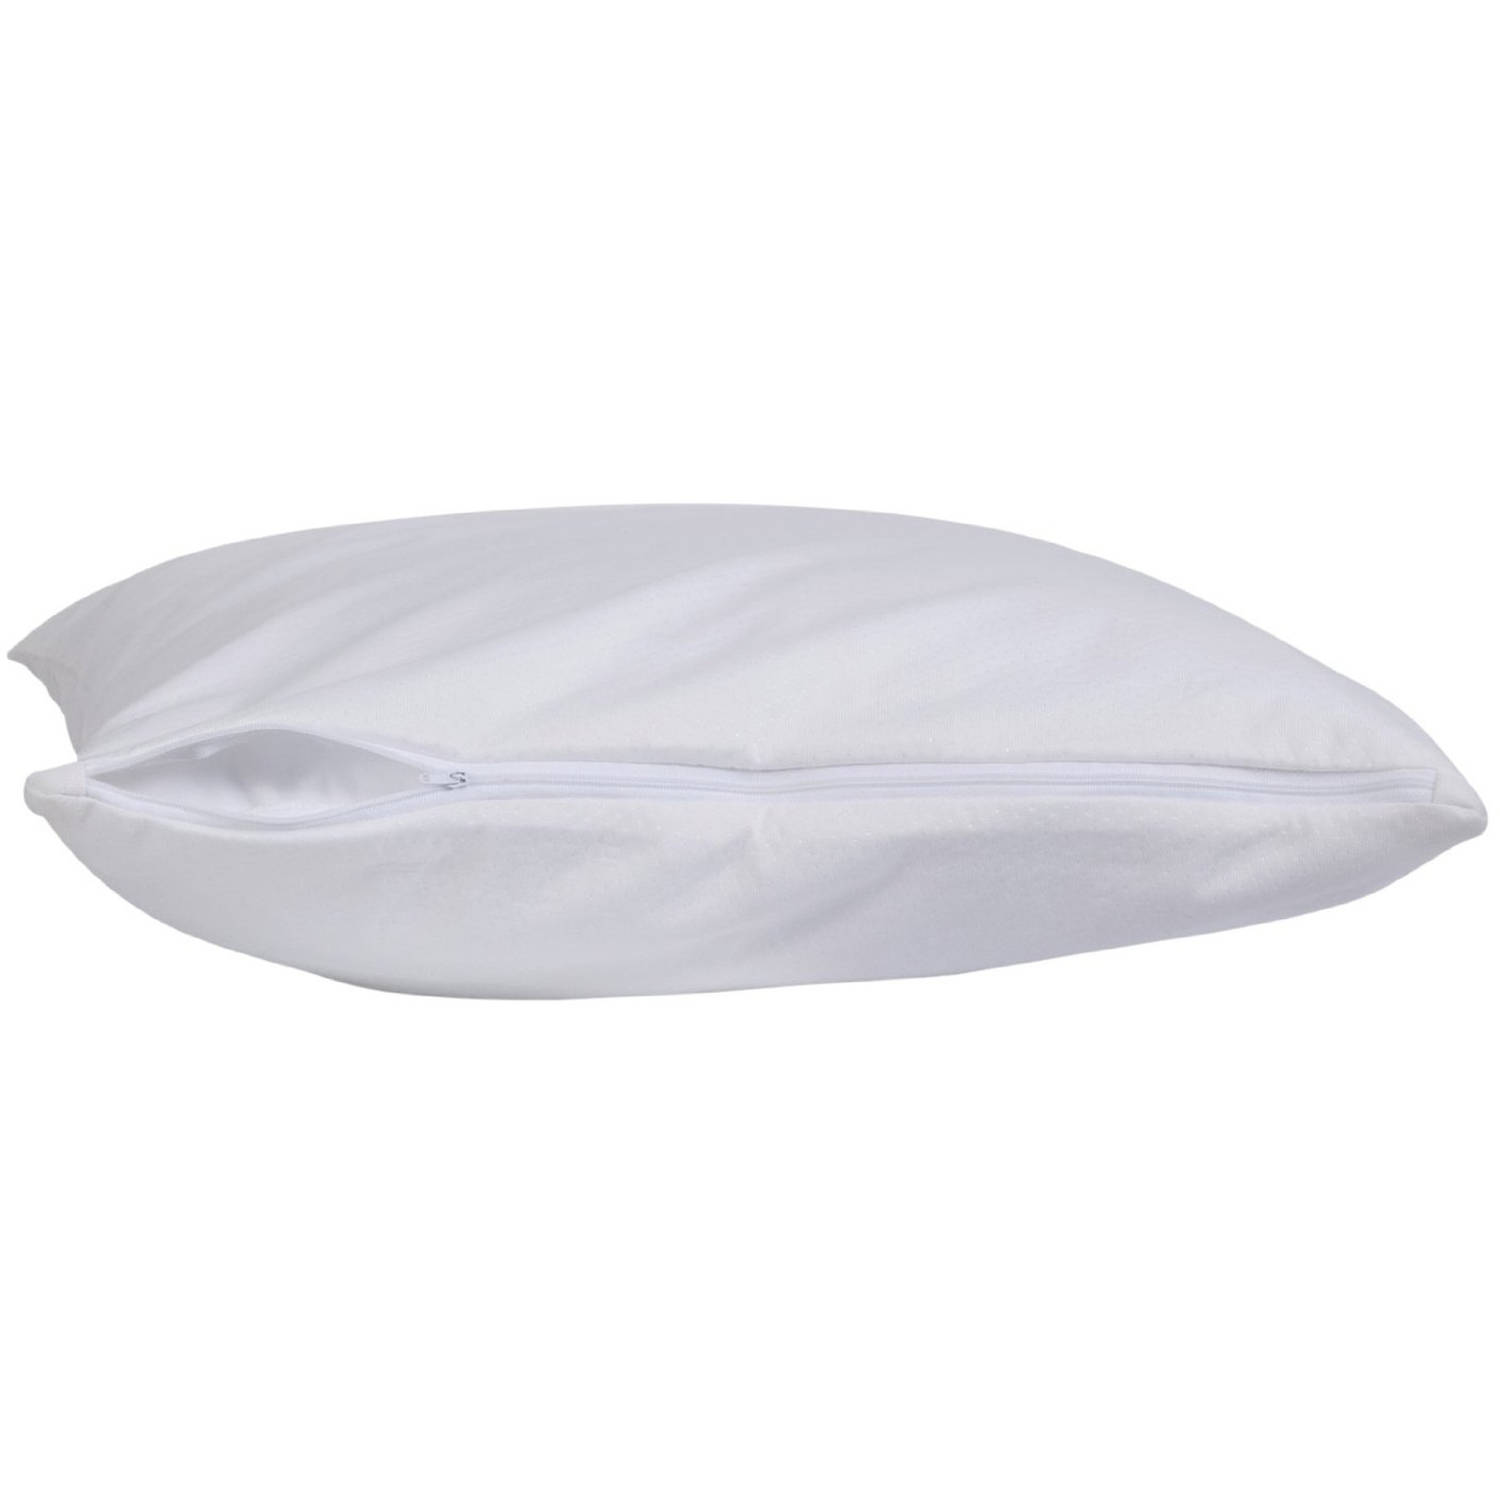 ProtectEase Premium Waterproof Zippered Pillow Cover by SSI, LLC